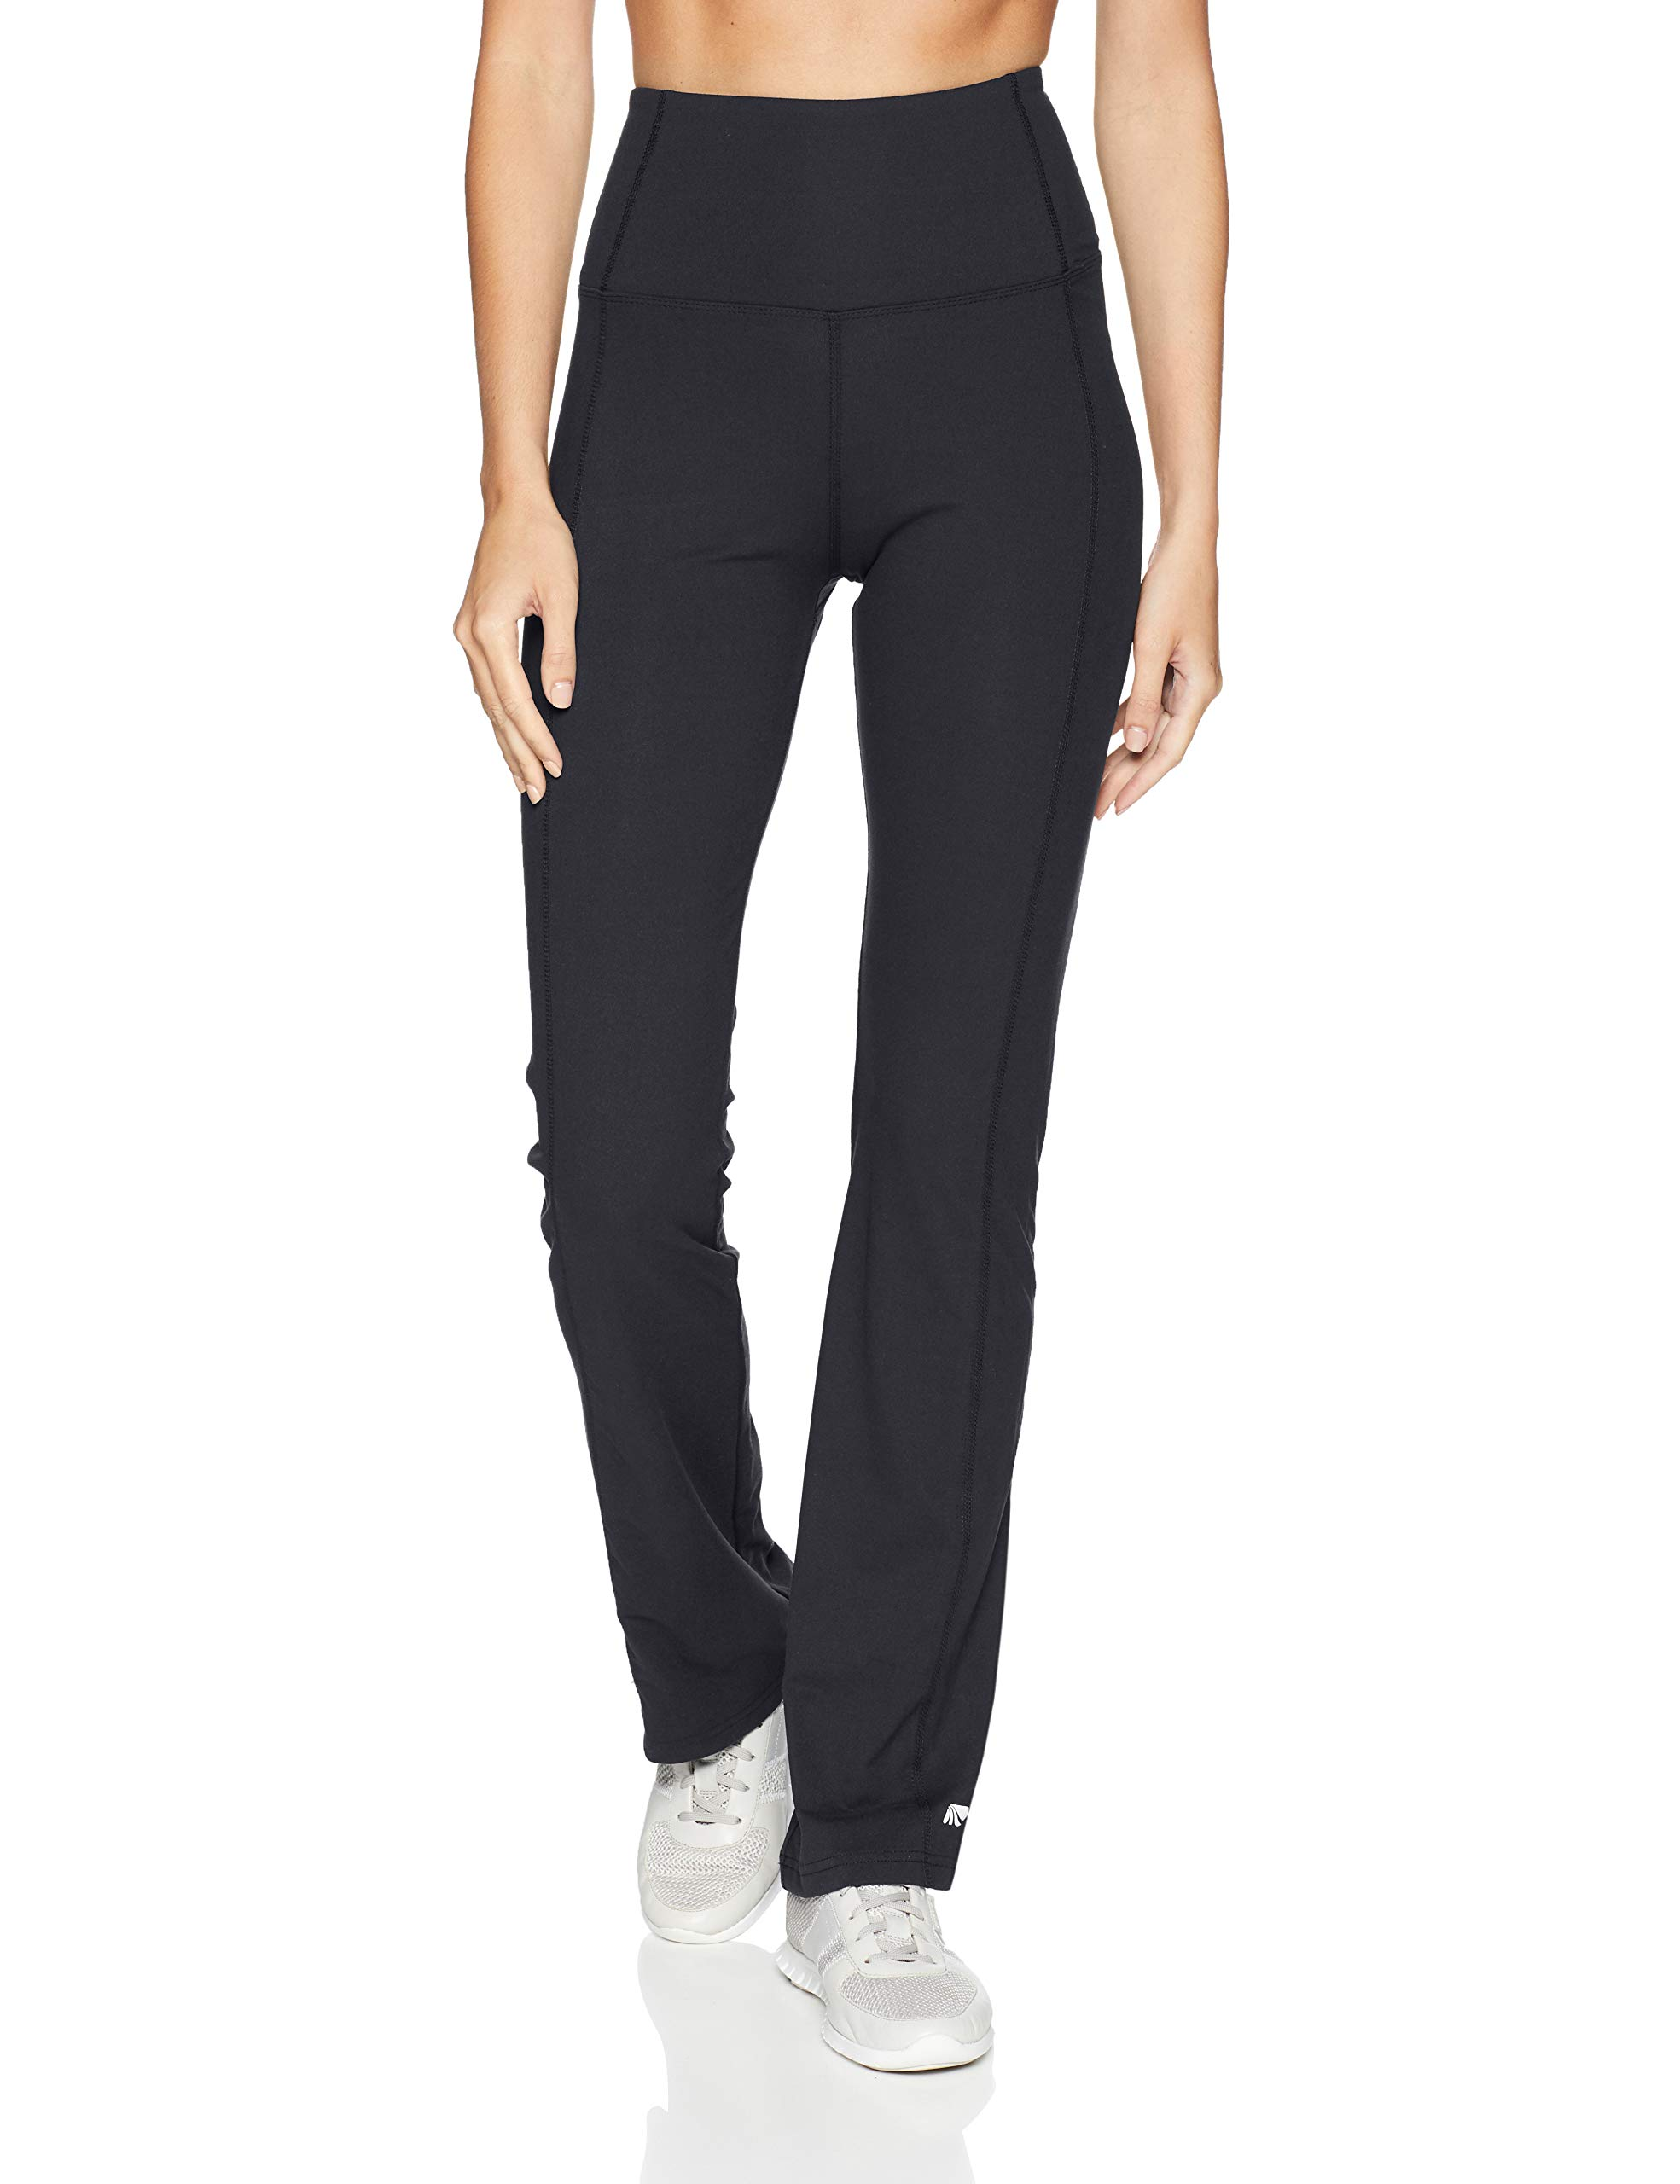 Marika Women's Sophia High Rise Tummy Control Pant, Black, Medium